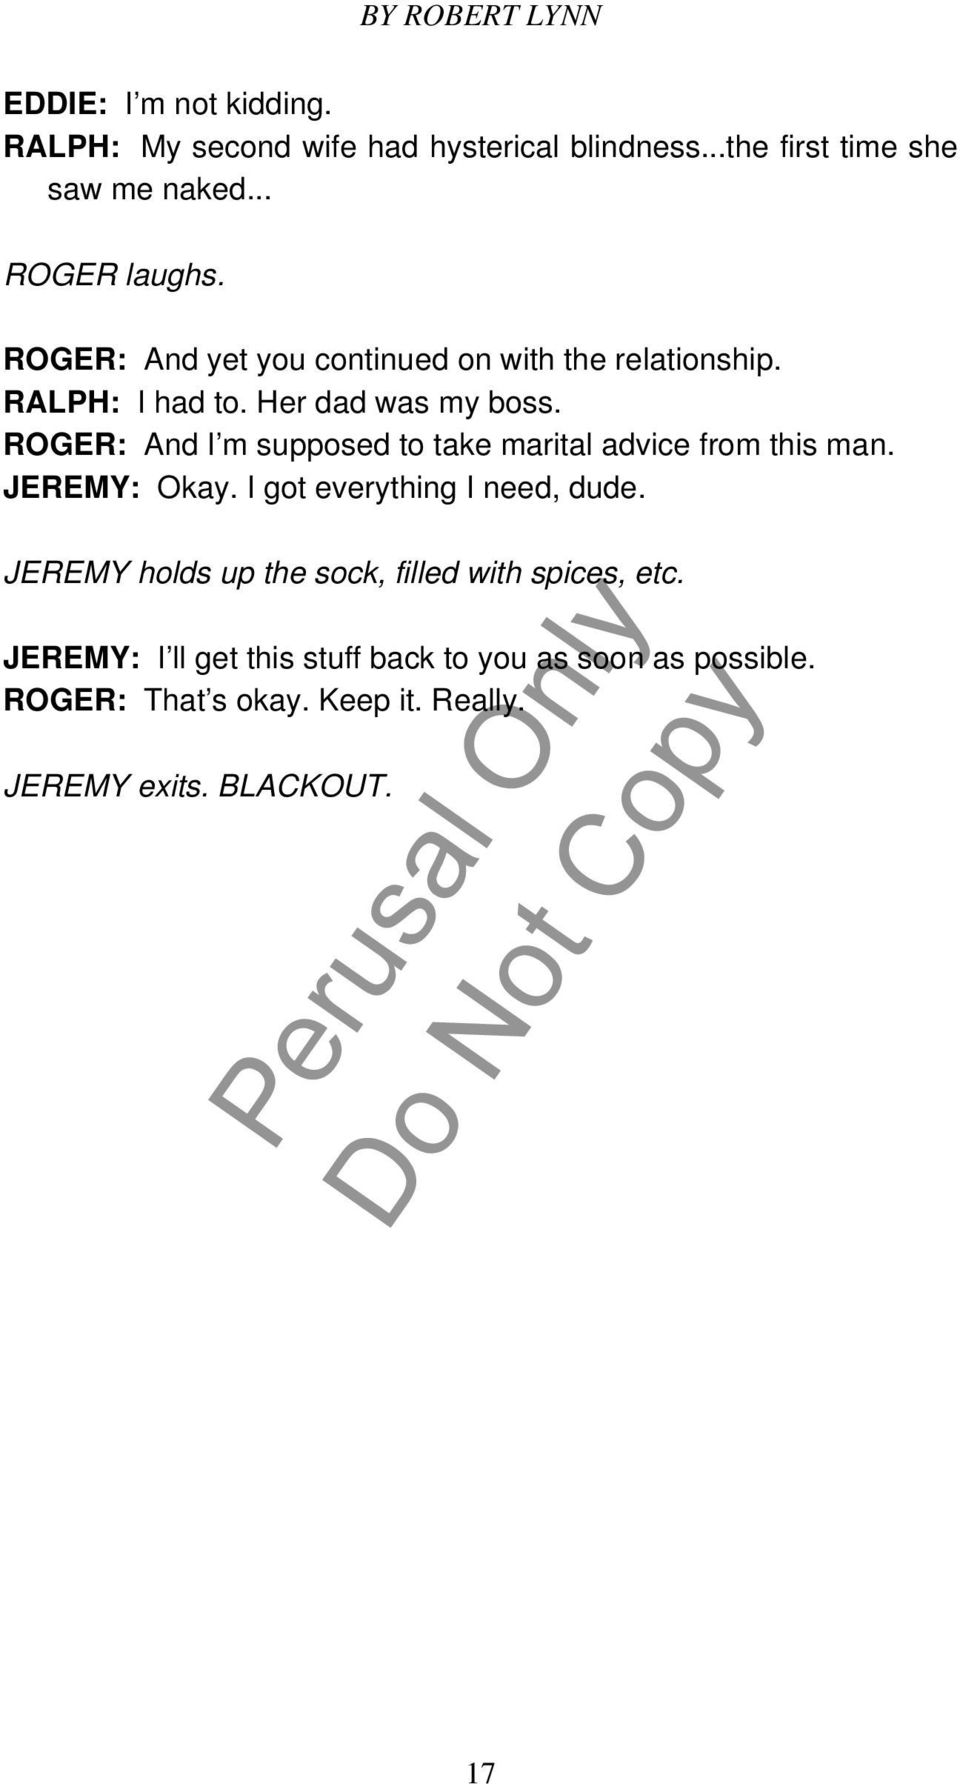 ROGER: And I m supposed to take marital advice from this man. JEREMY: Okay. I got everything I need, dude.